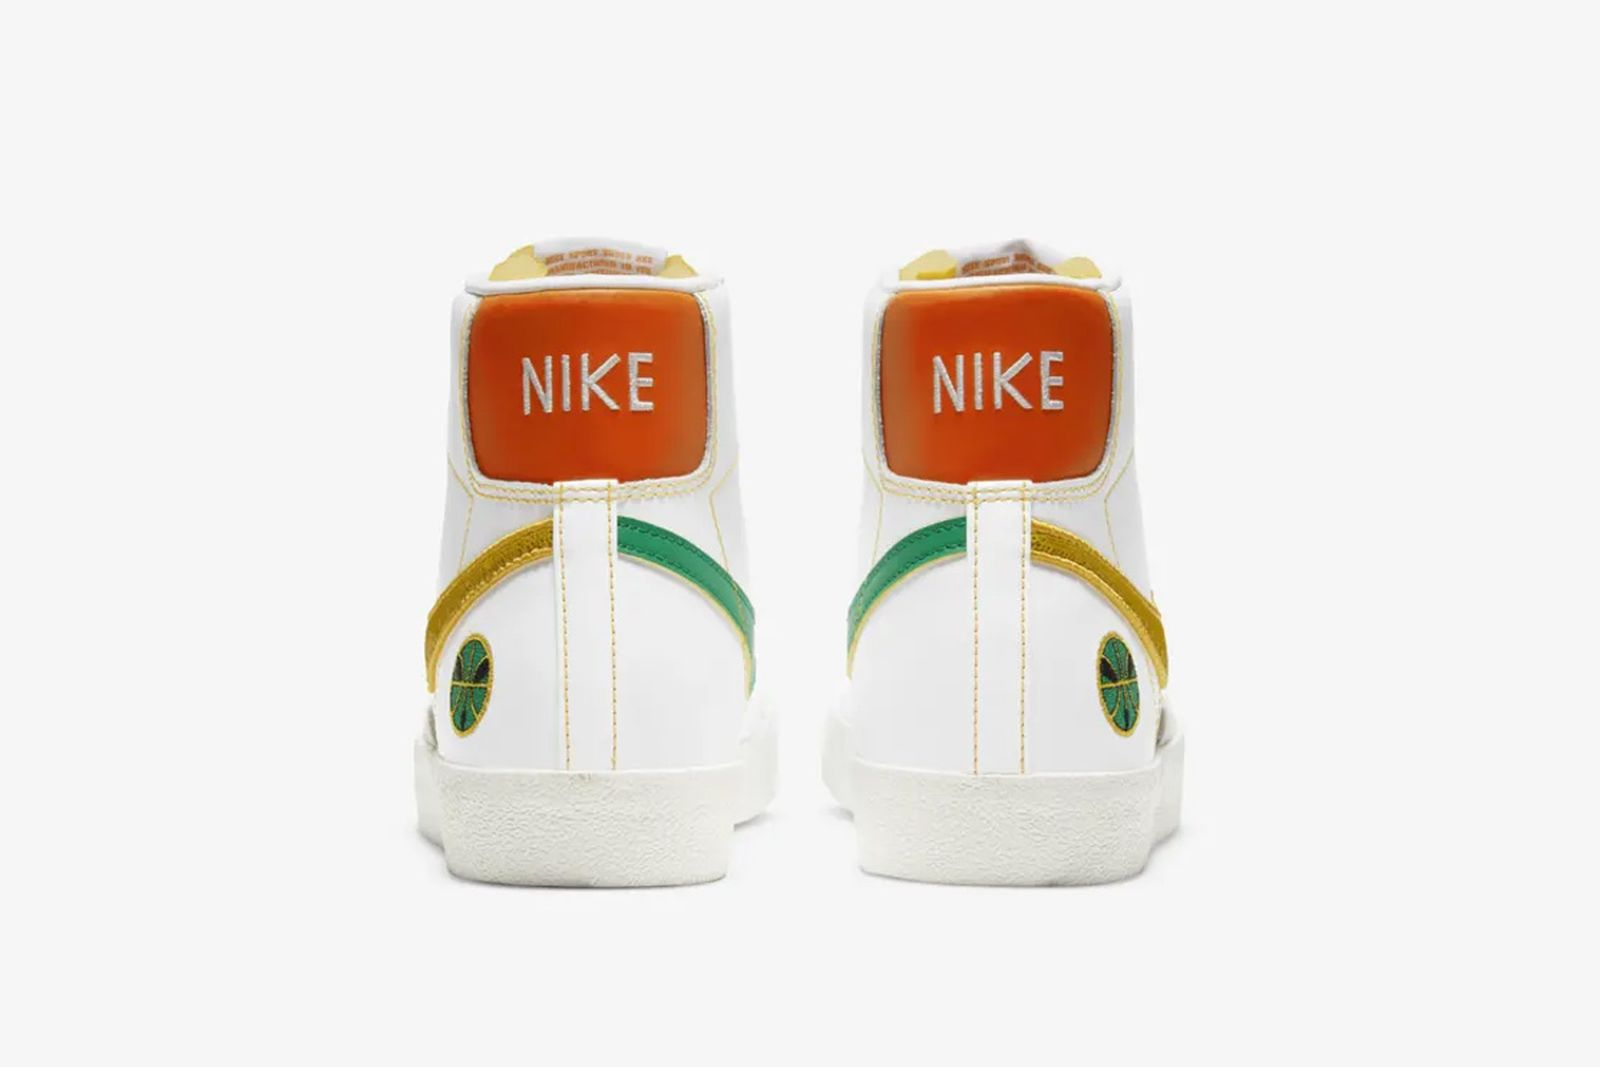 nike-air-force-1-rayguns-release-date-price-05